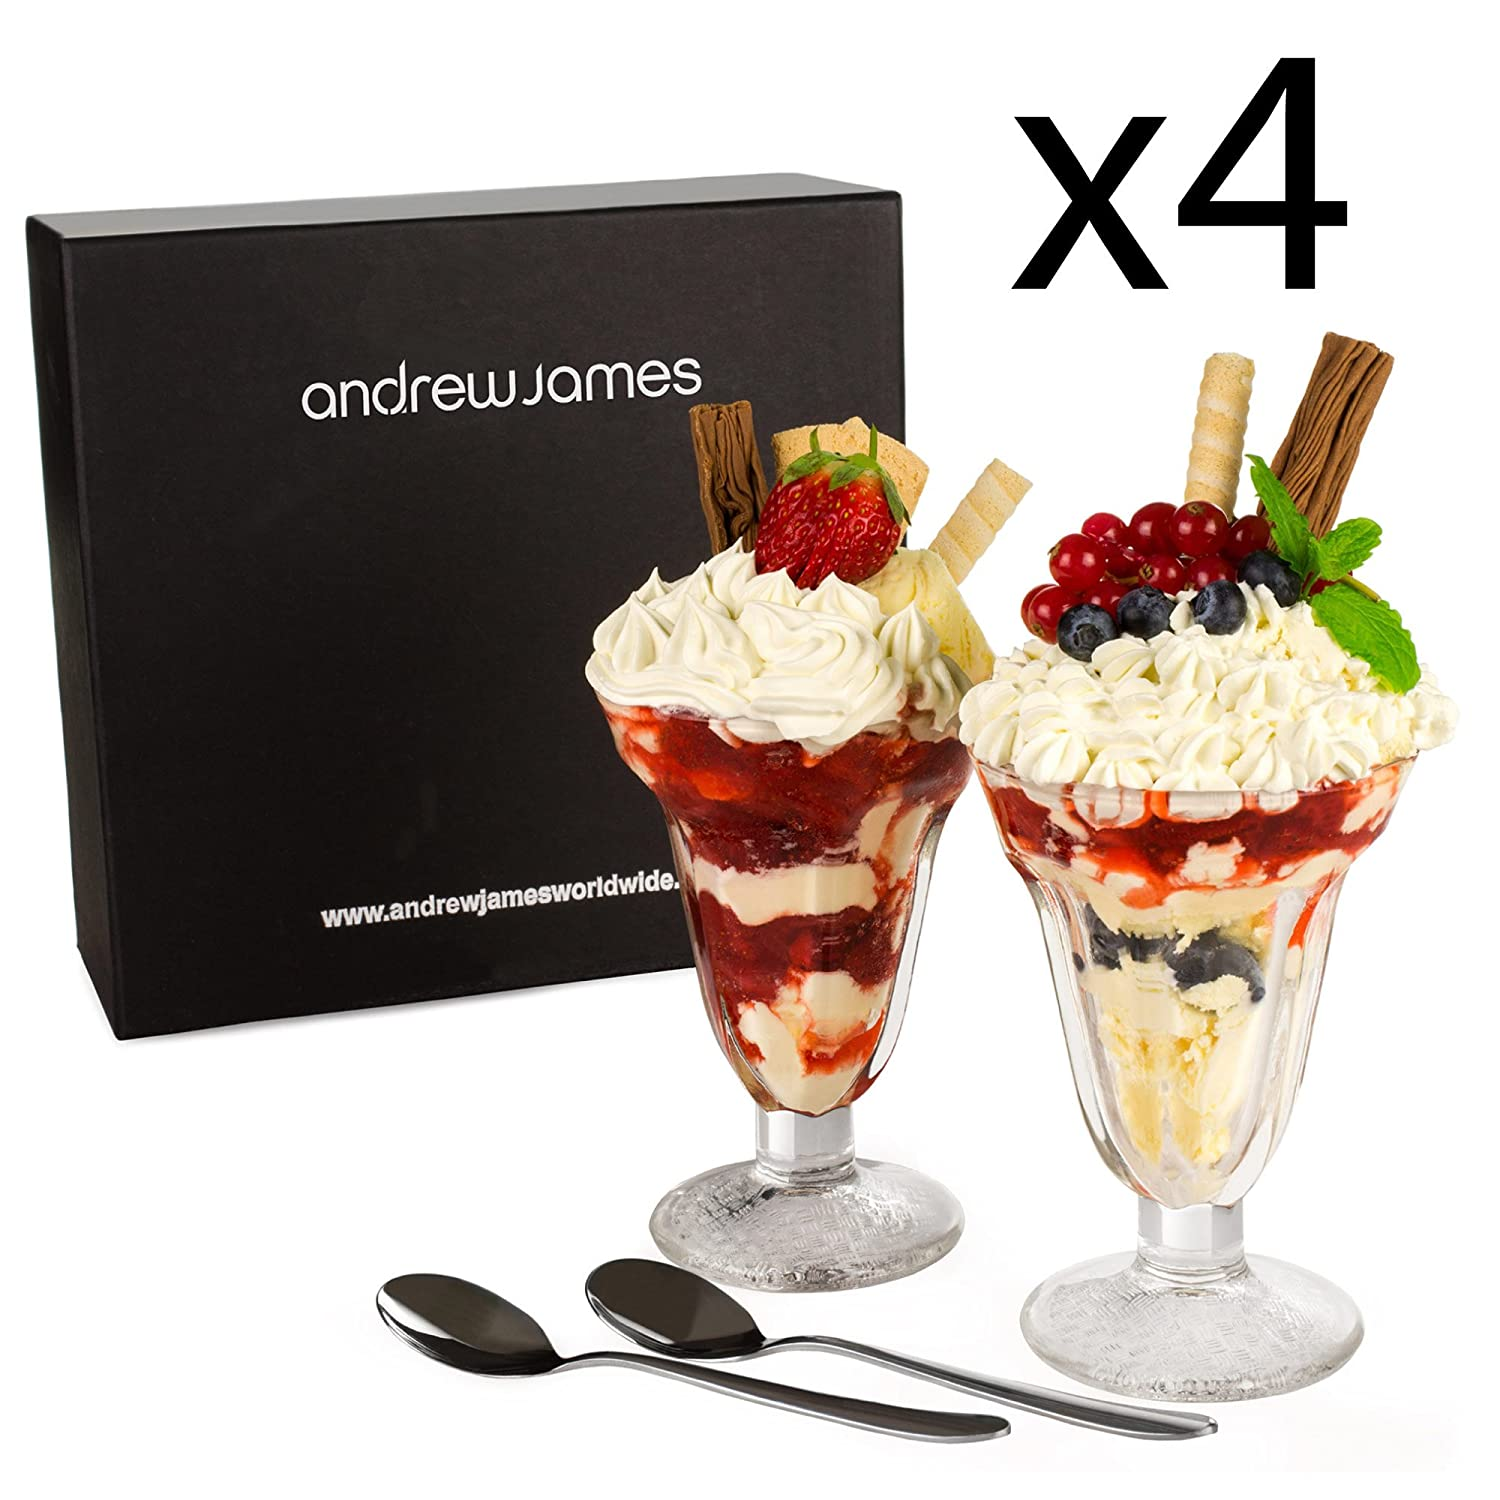 Andrew James Sundae Glasses | Set of 2 Dessert Glasses for Ice Cream Knickerbocker Glory Trifle and other Puddings | Includes 2 Long Handled Spoons 5060146066600